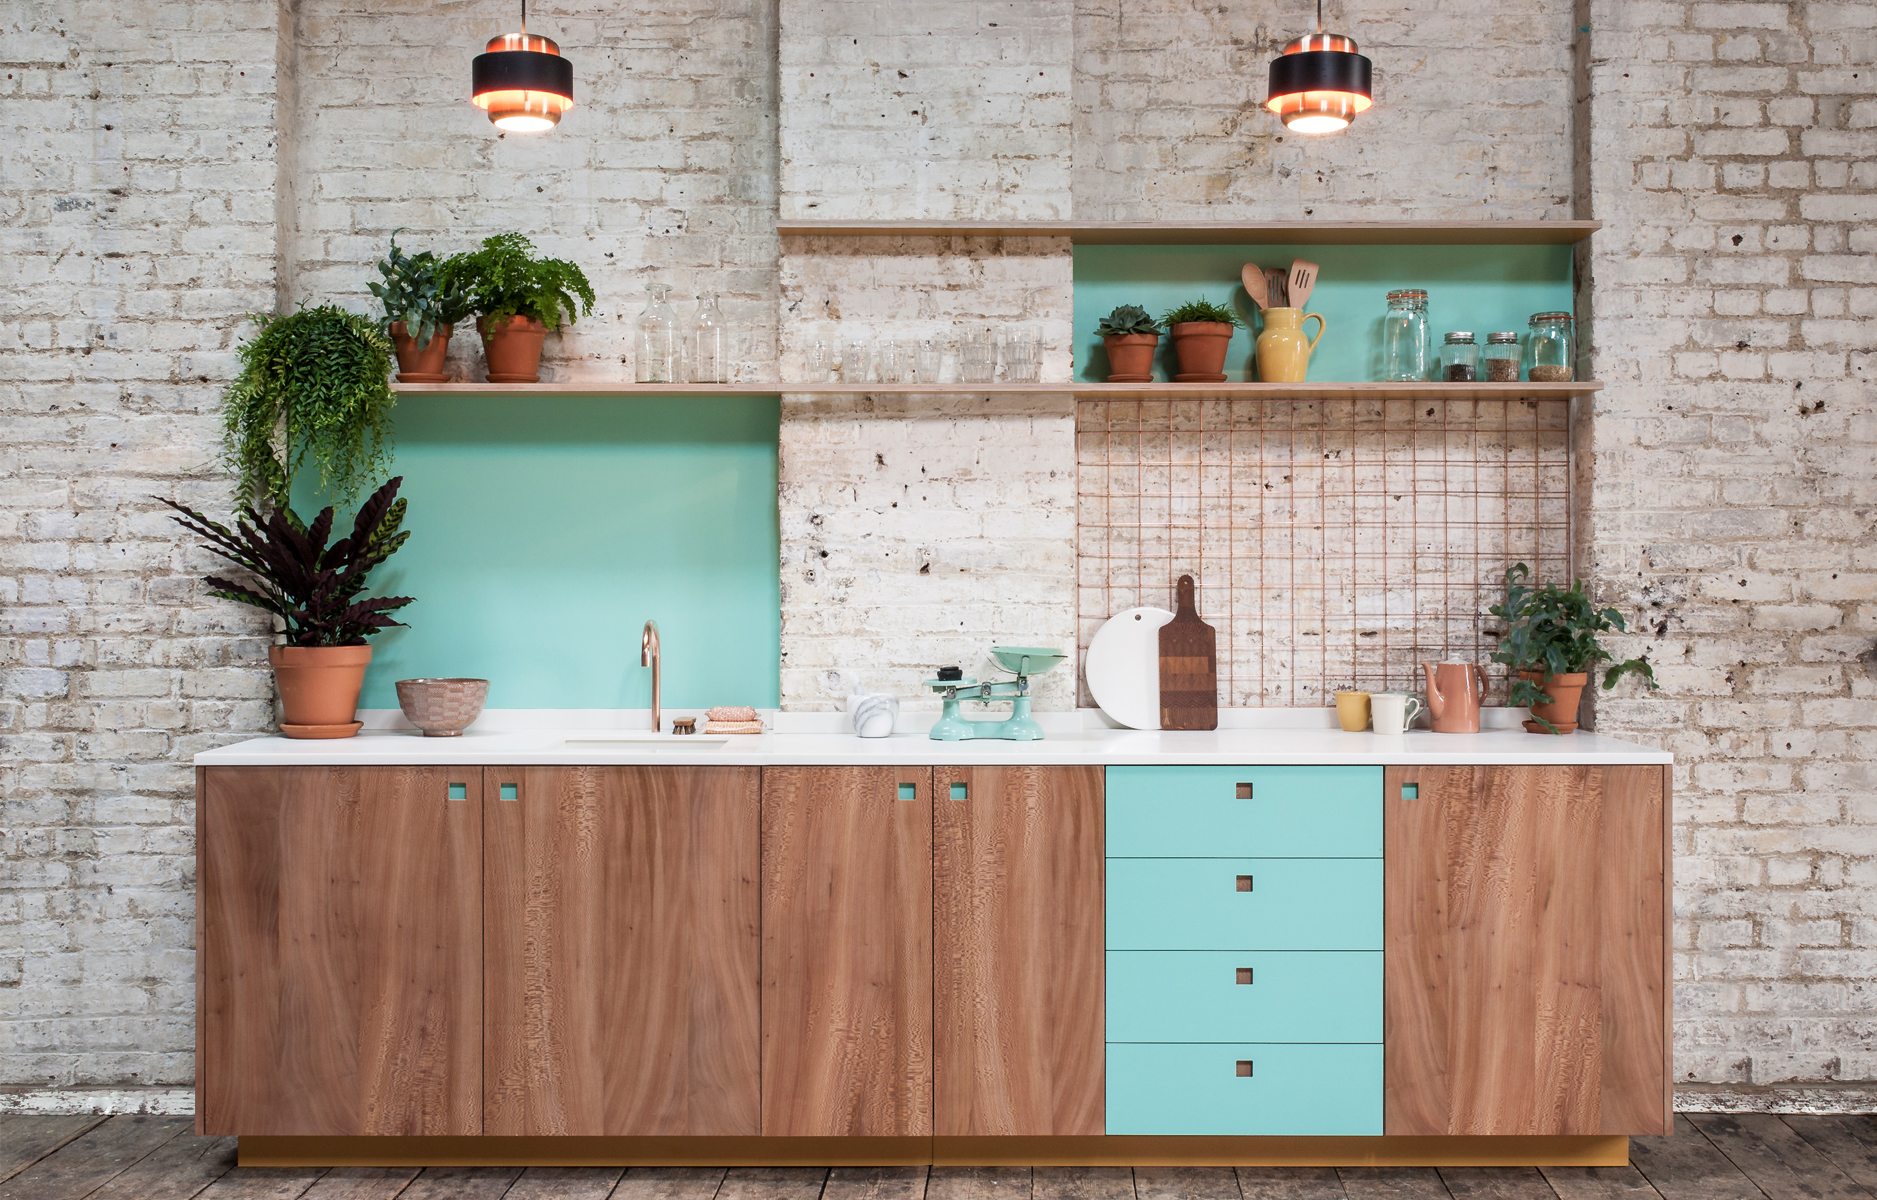 Kitchen Color Design Pictures Aqua Kitchen One Color Design Inspiration Bright Bazaar By Will